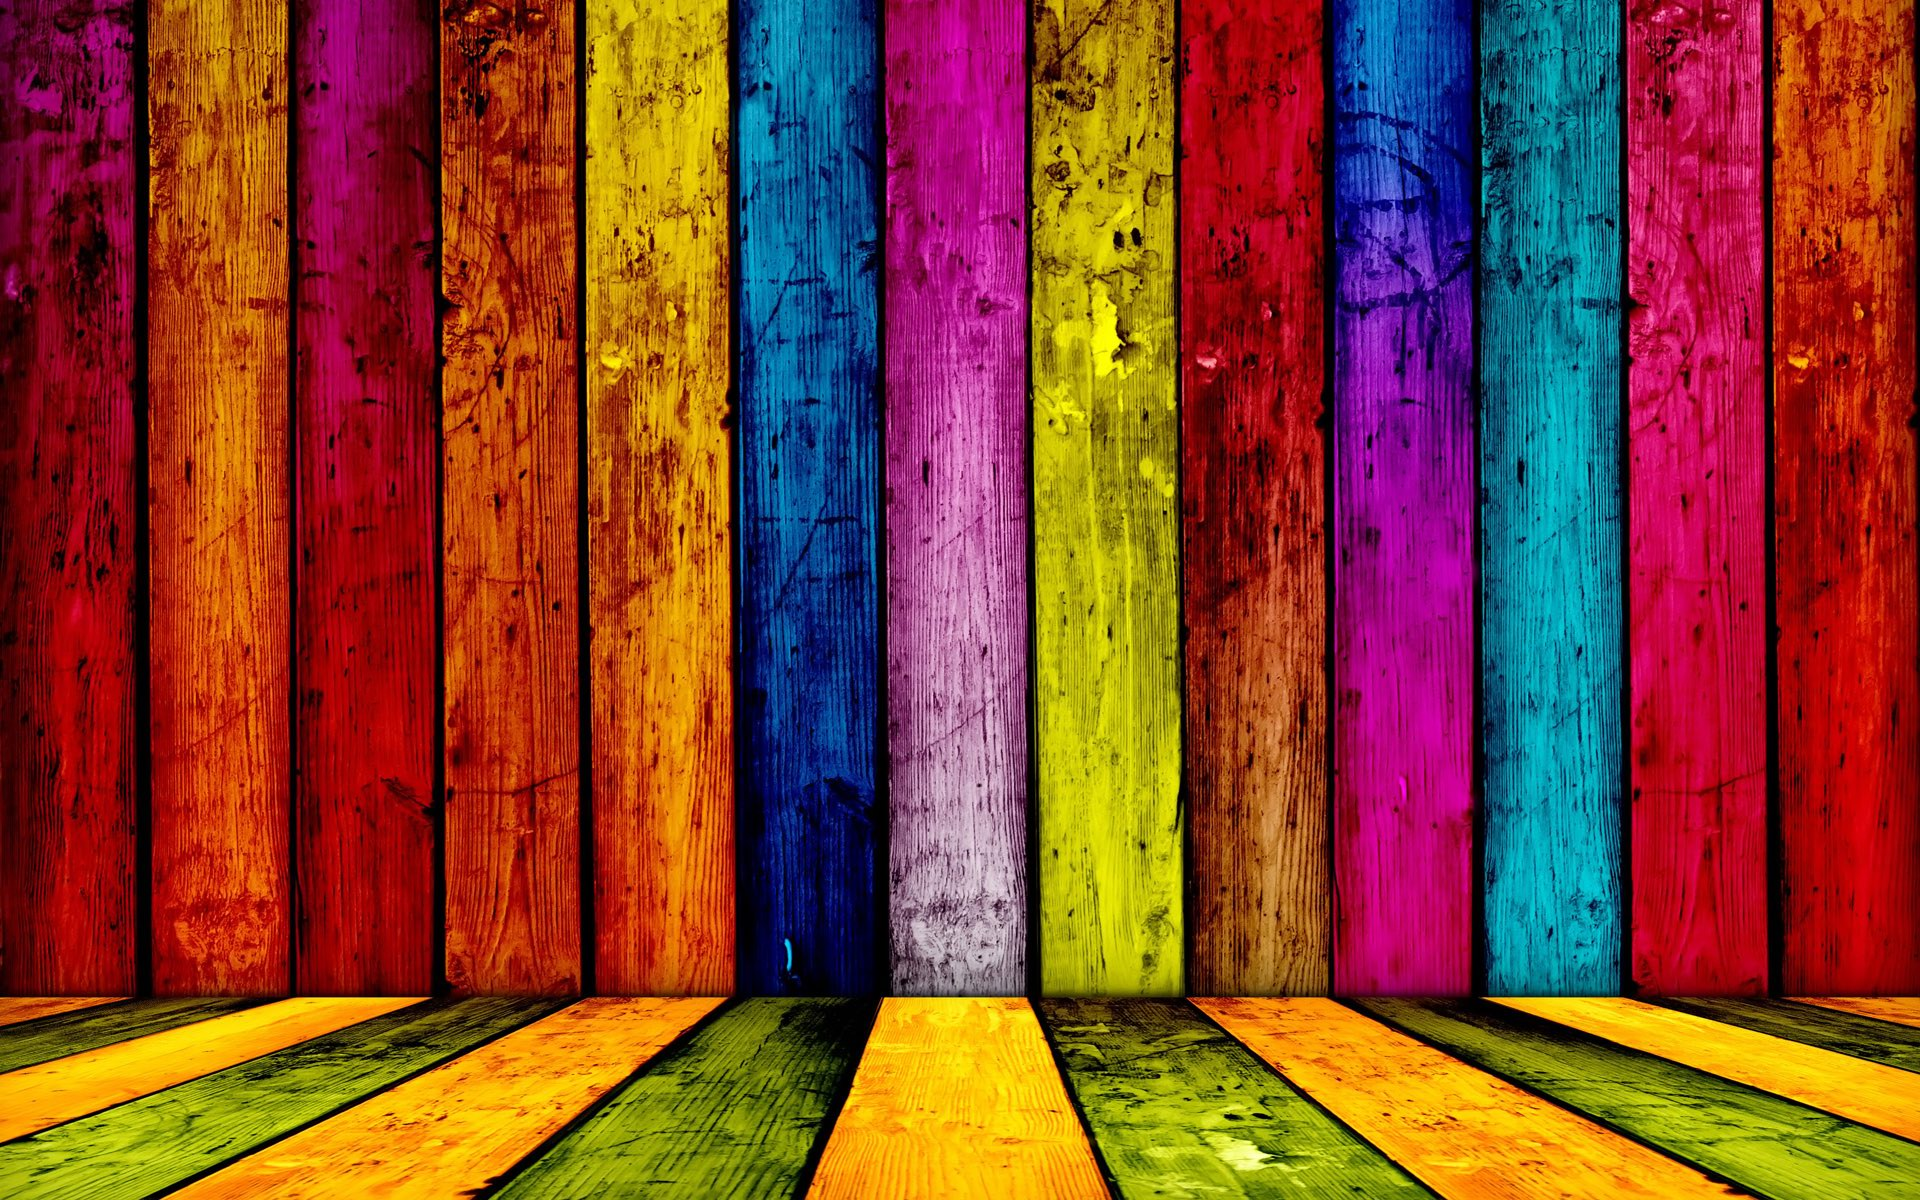 Striped Wood Colorful Wallpapers 743.93 Kb